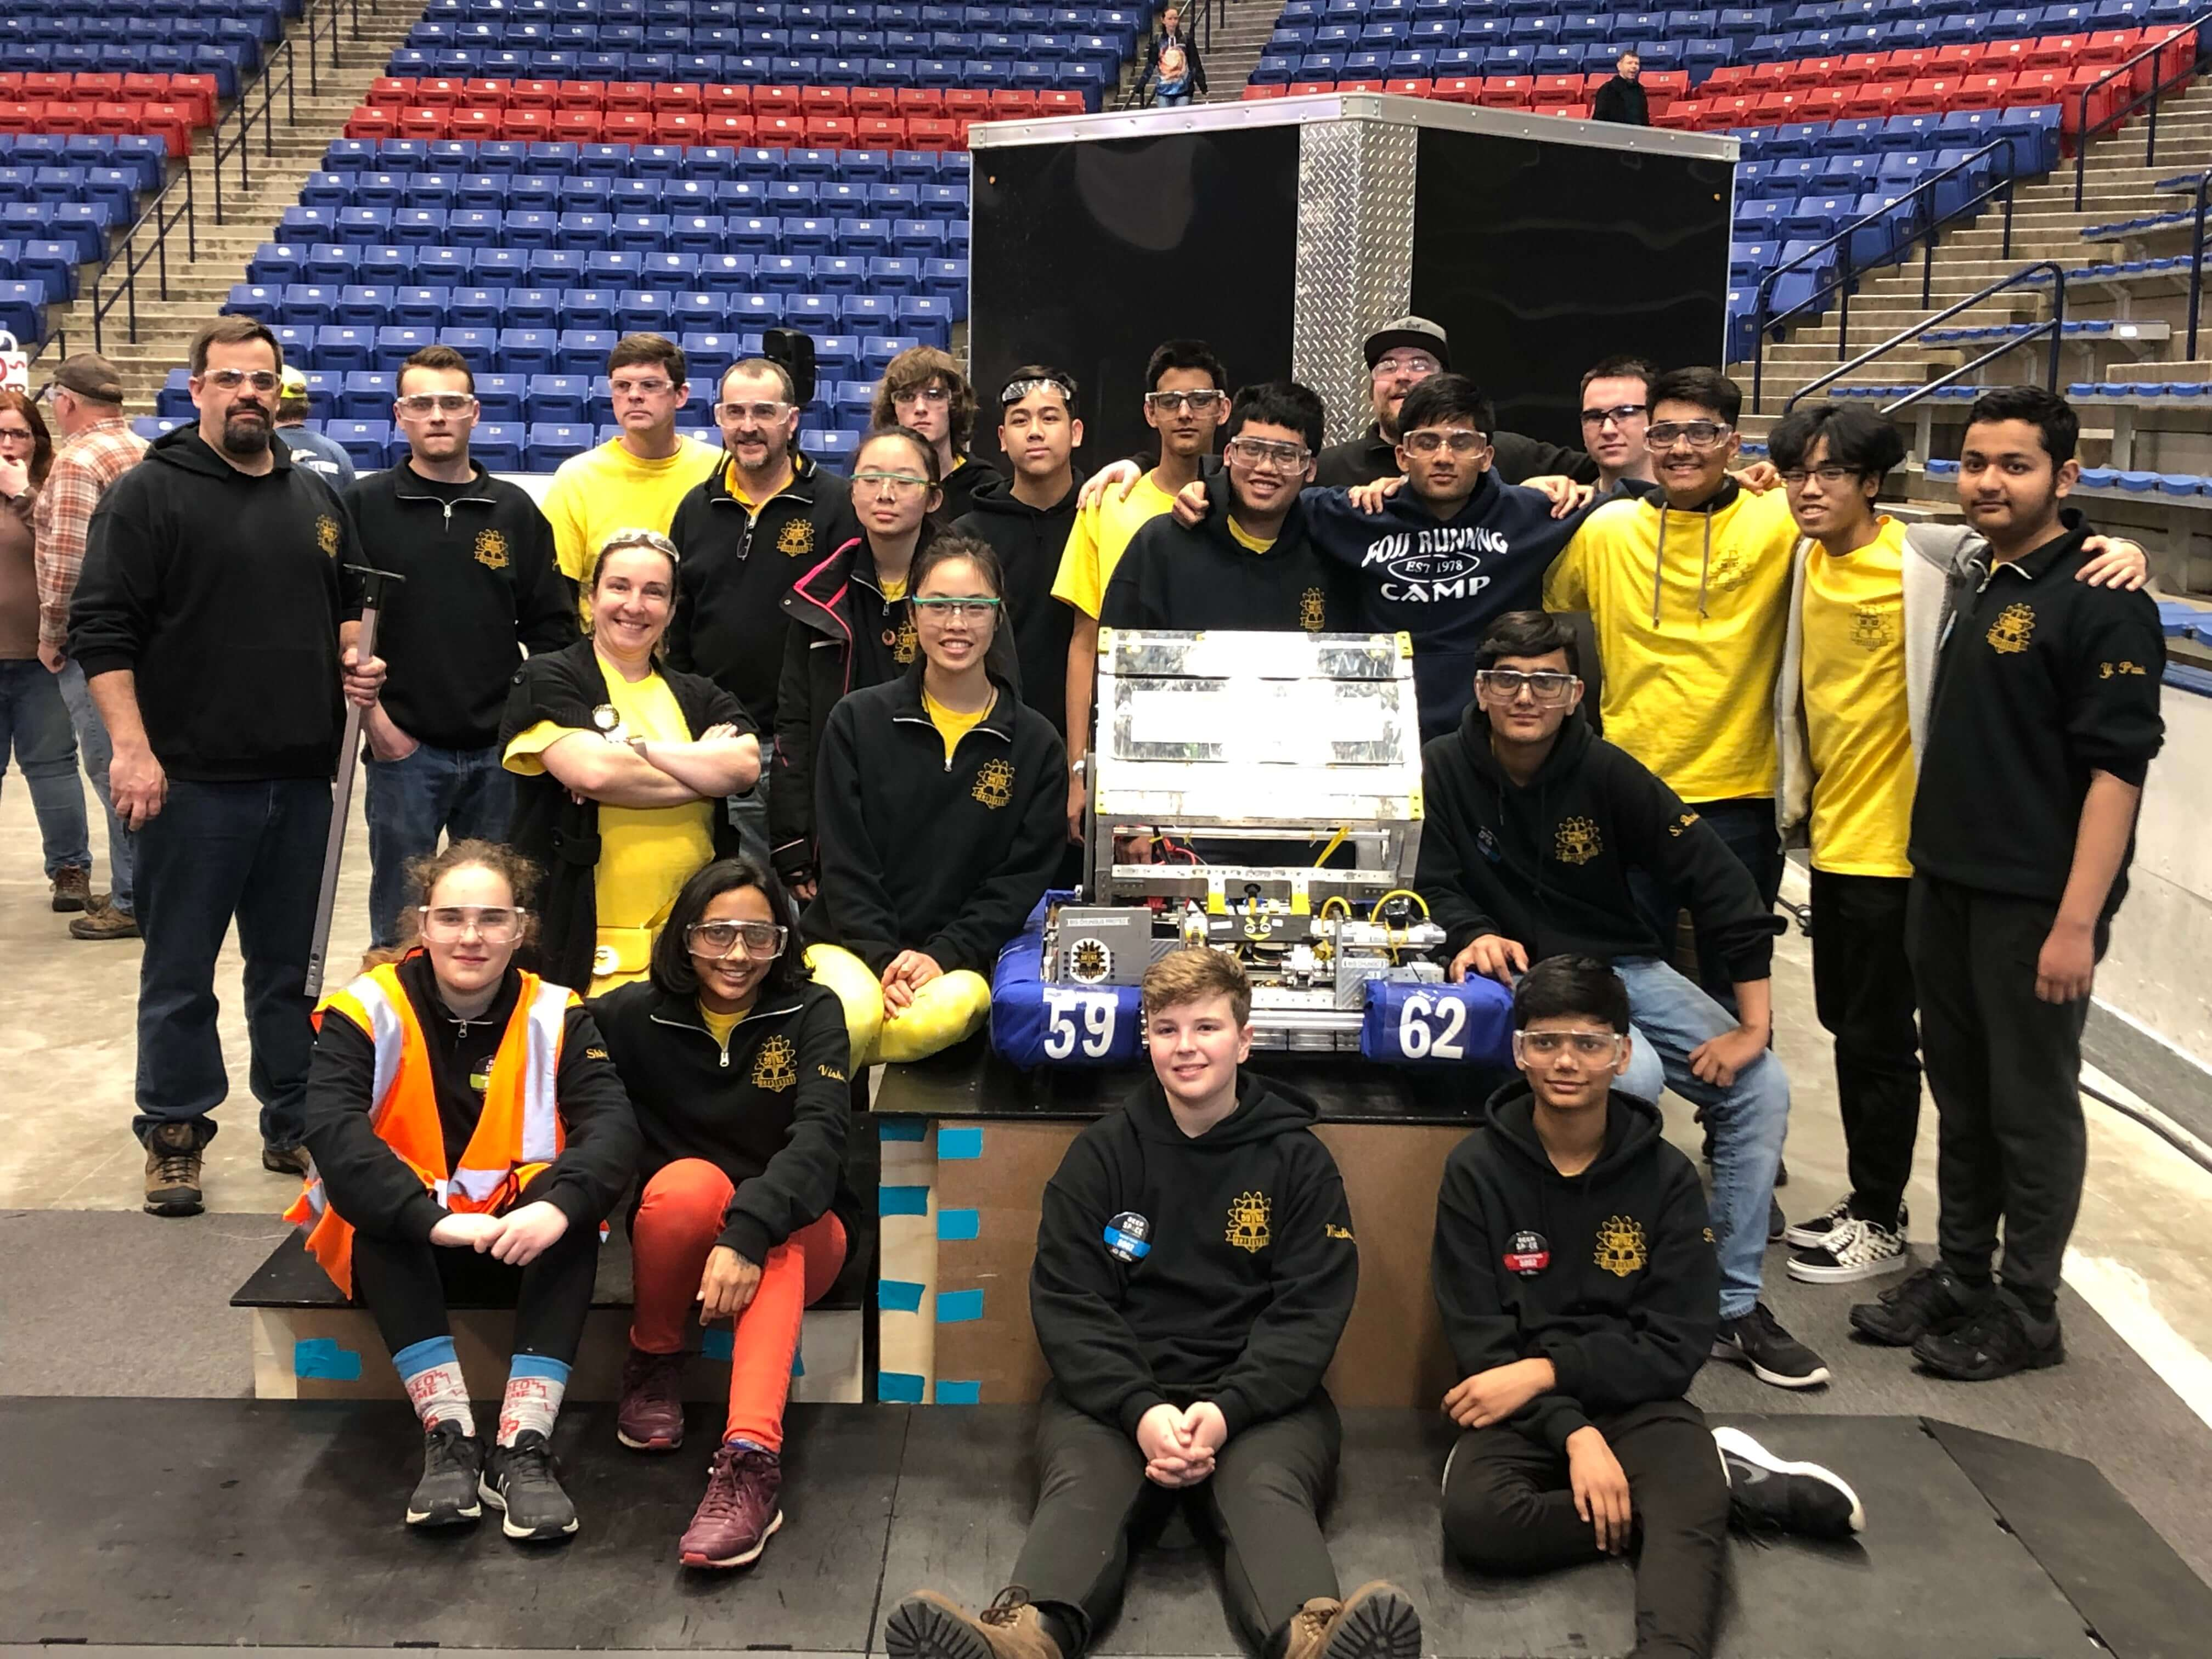 Group photo of Team 5962 at UNH District Event 2019